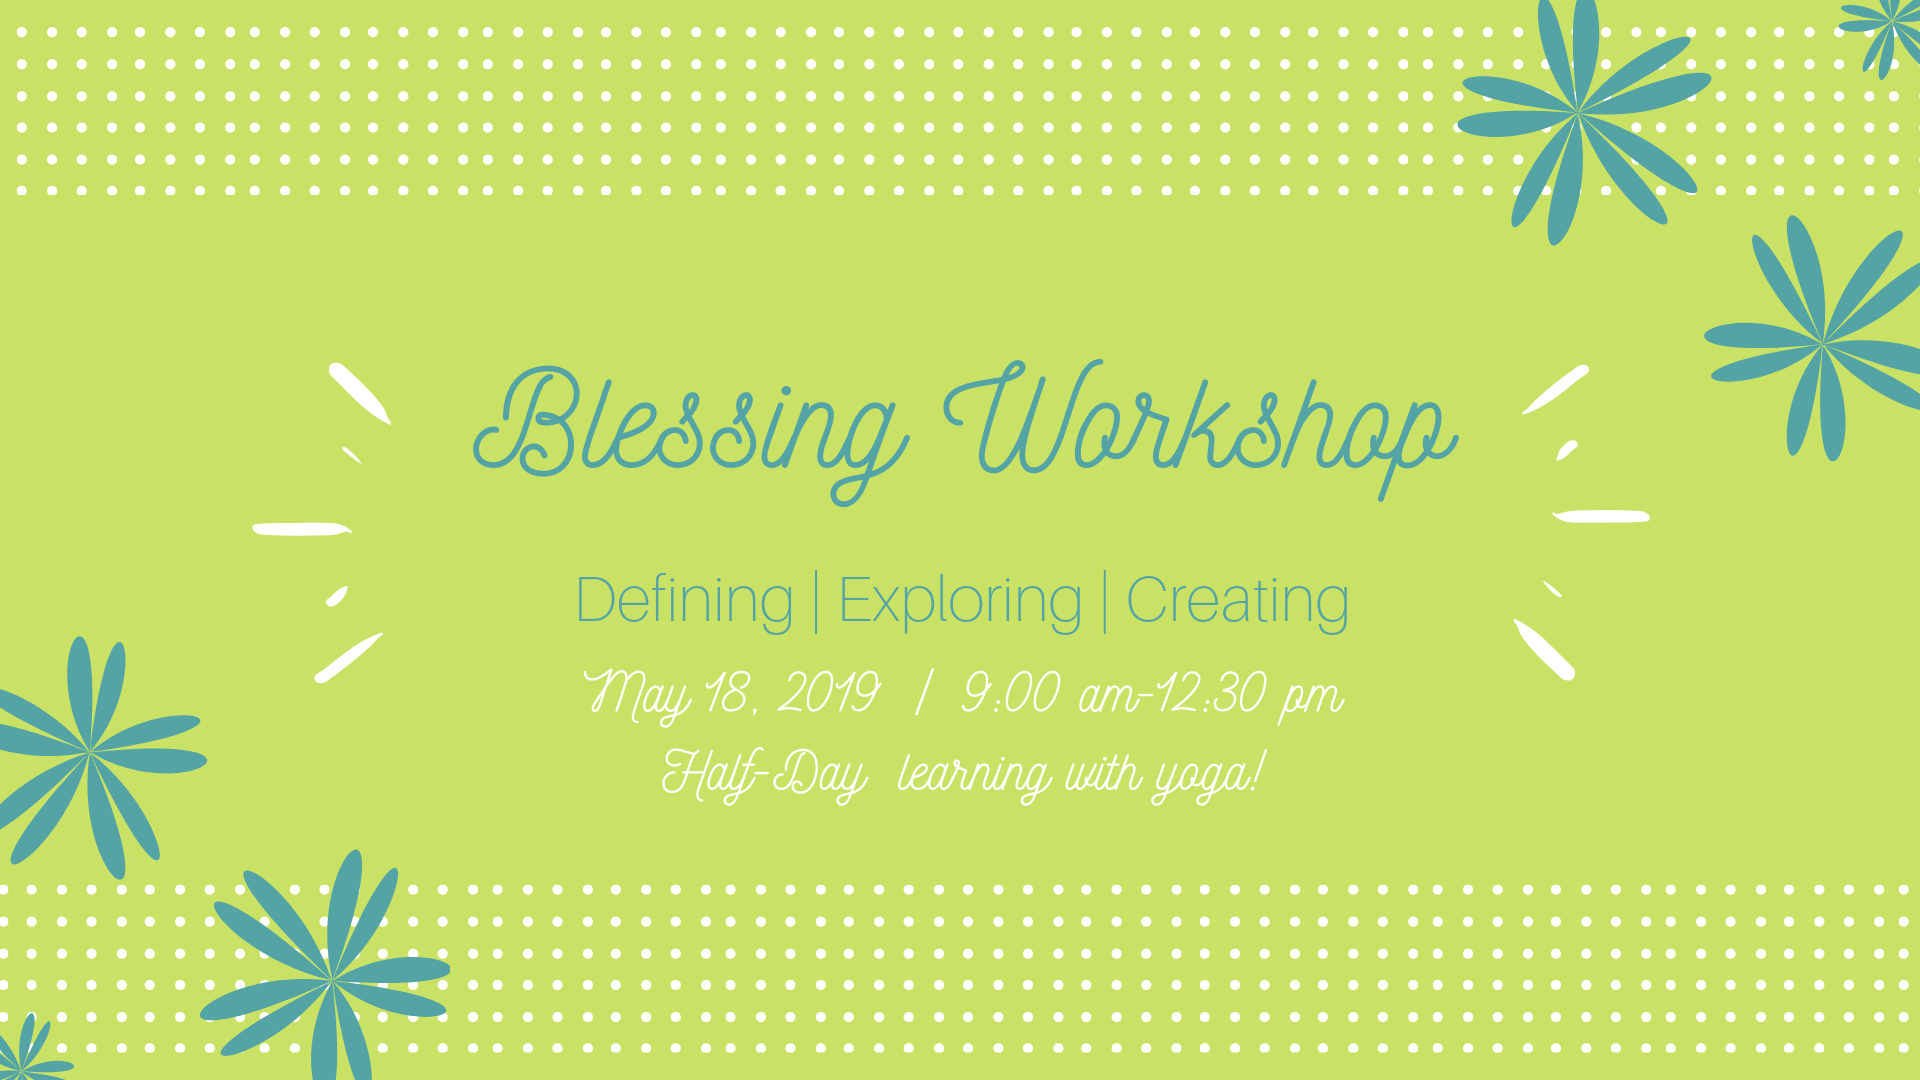 Blessing Workshop